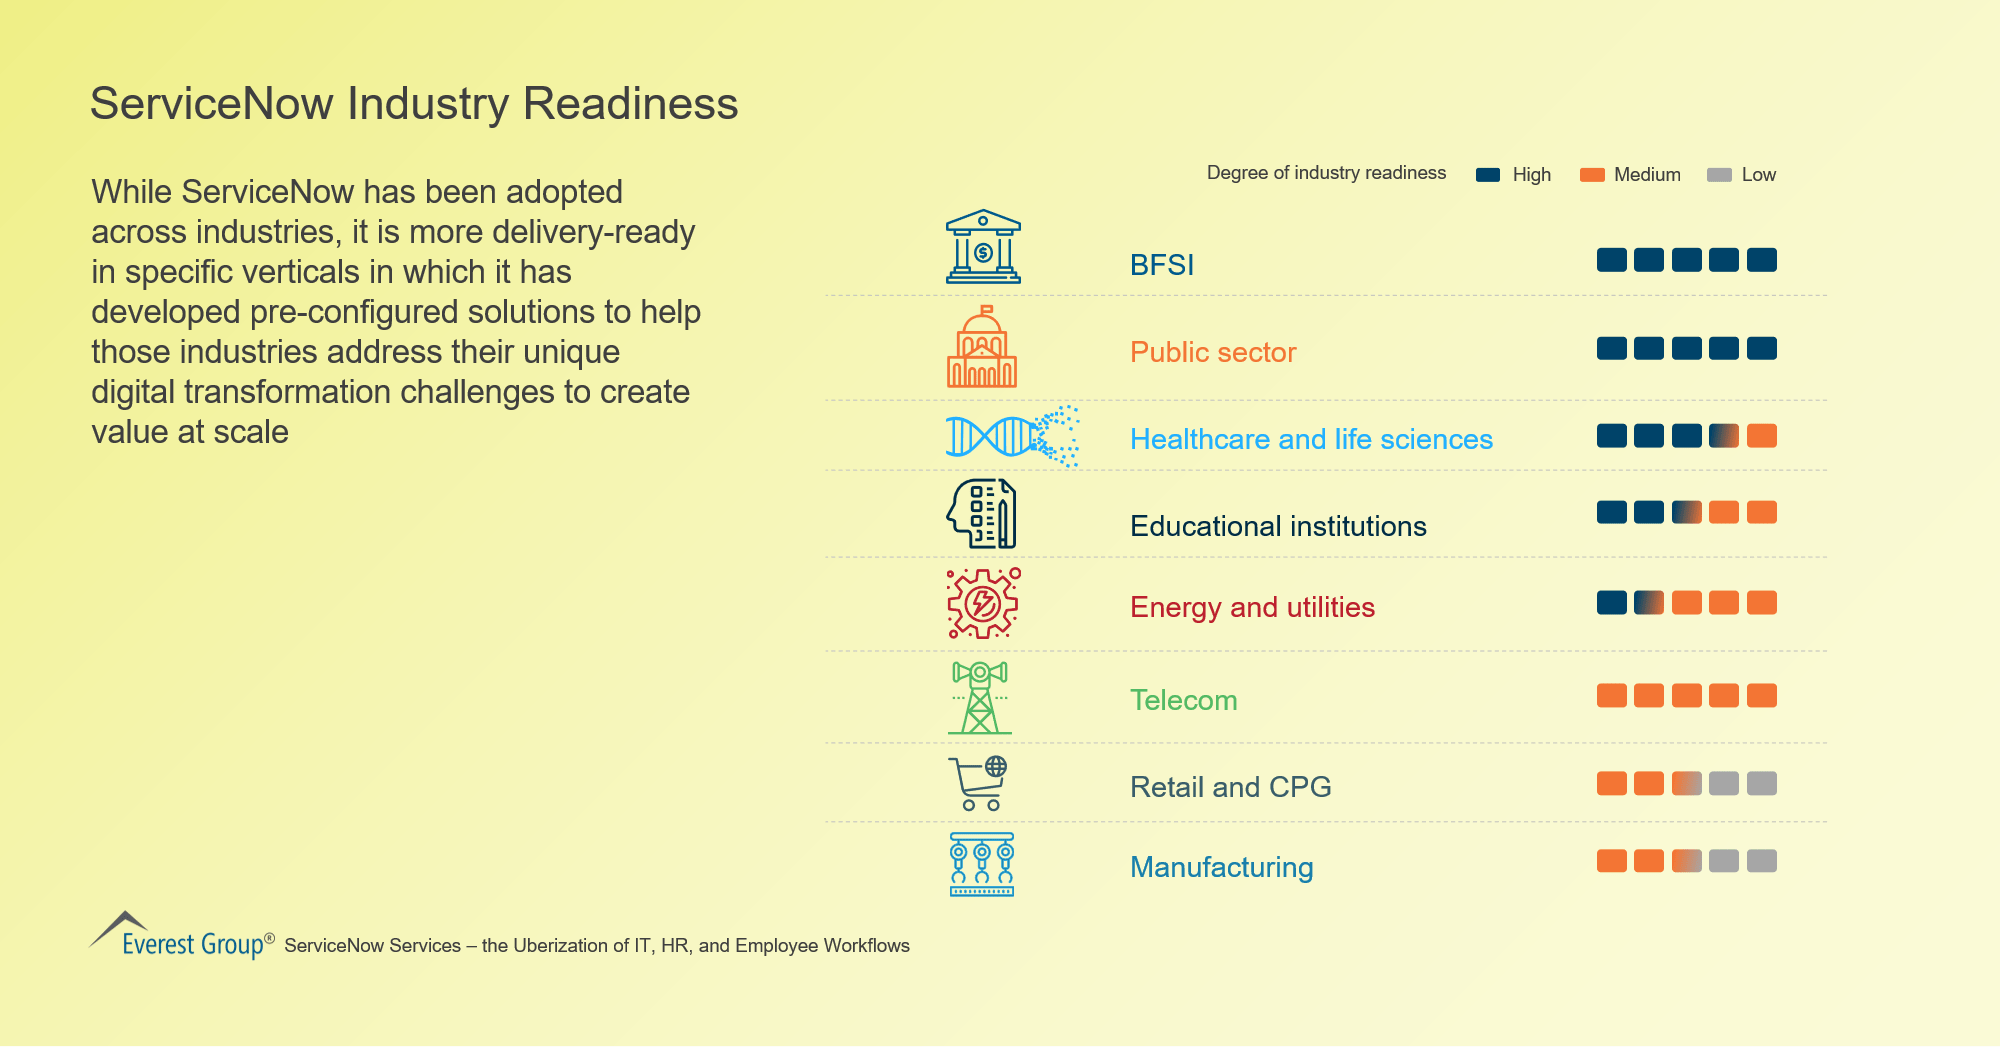 ServiceNow Industry Readiness